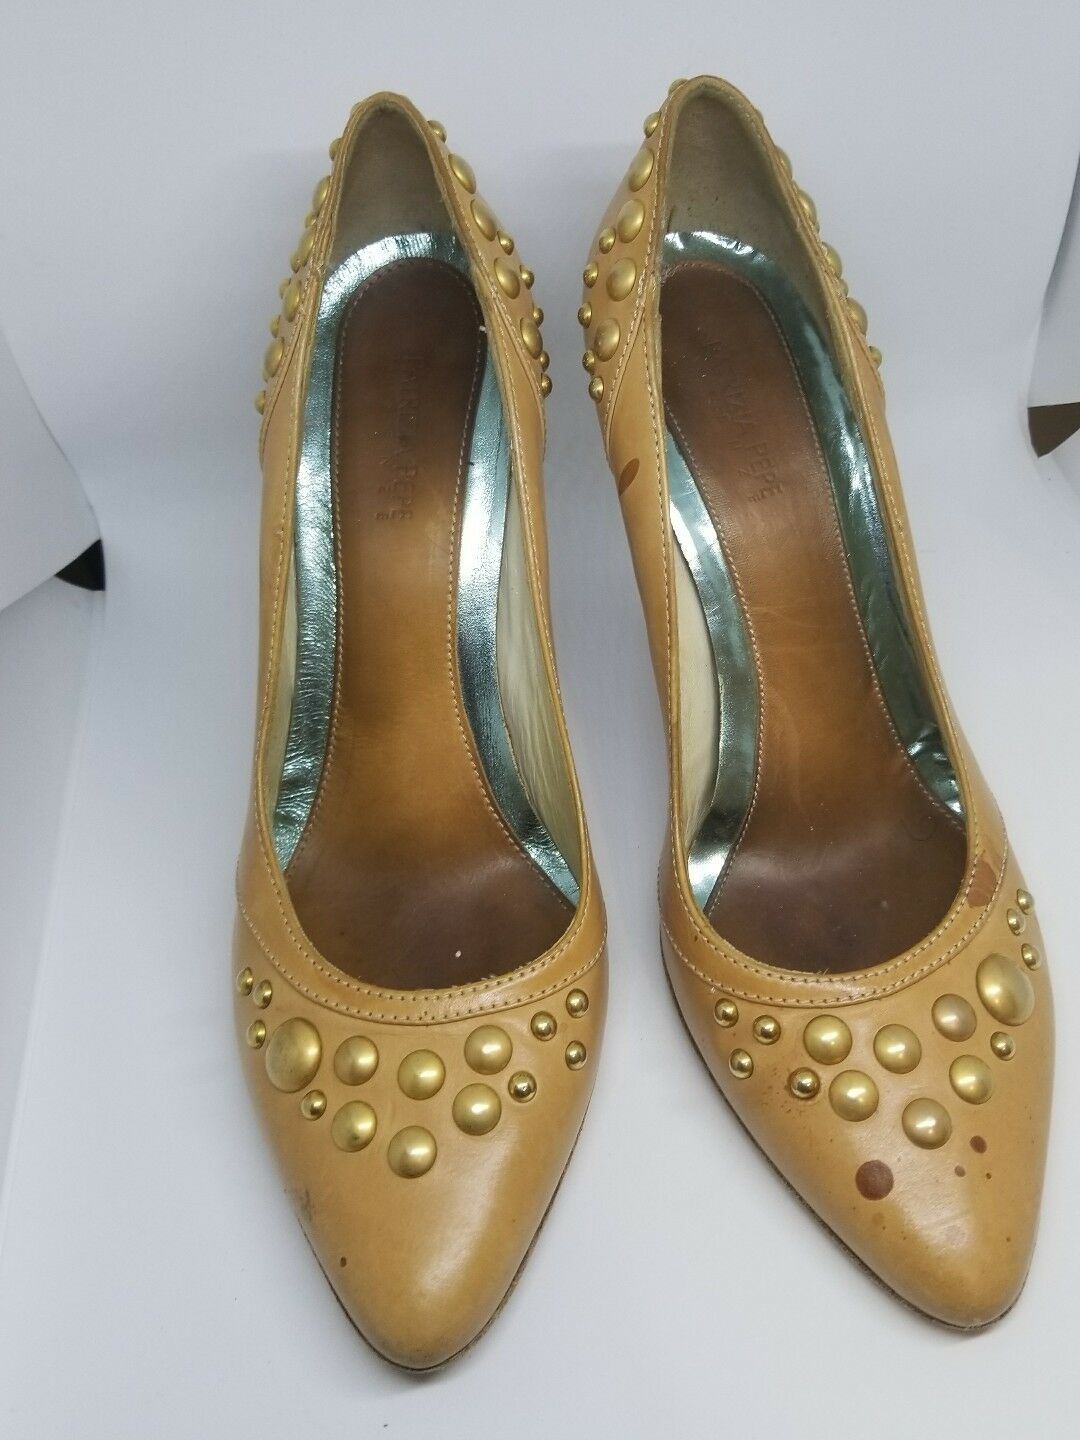 nelle promozioni dello stadio Patrizia Patrizia Patrizia Pepe Firenze Italian Genuine Marrone Leather Pumps with round studs 37  alla moda